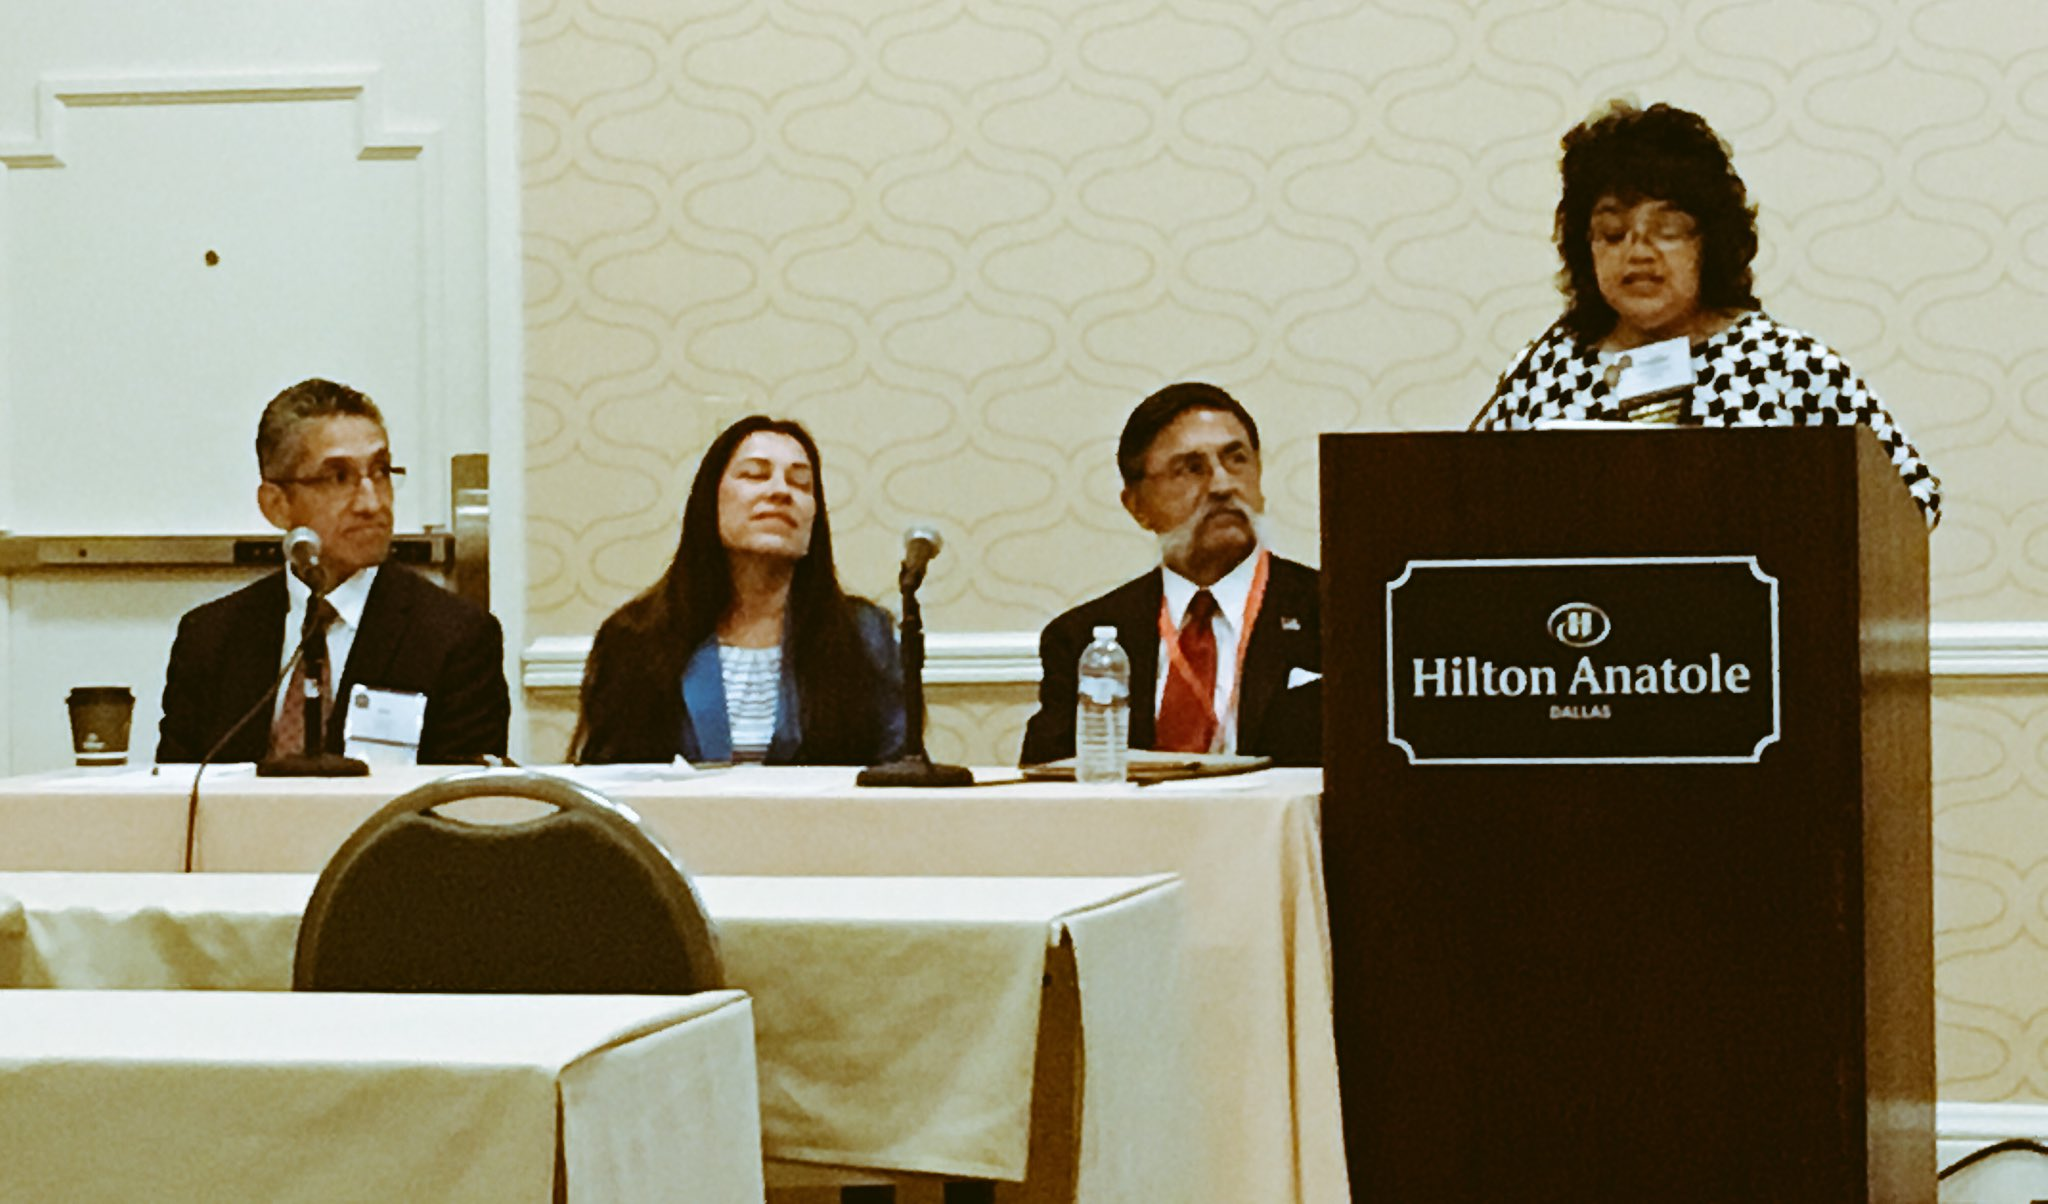 "Hispanic Issues Section panel ""The Past, Present & Future of Minority Participation"" starting now. #sbot17 https://t.co/j9QLiwzBaO"